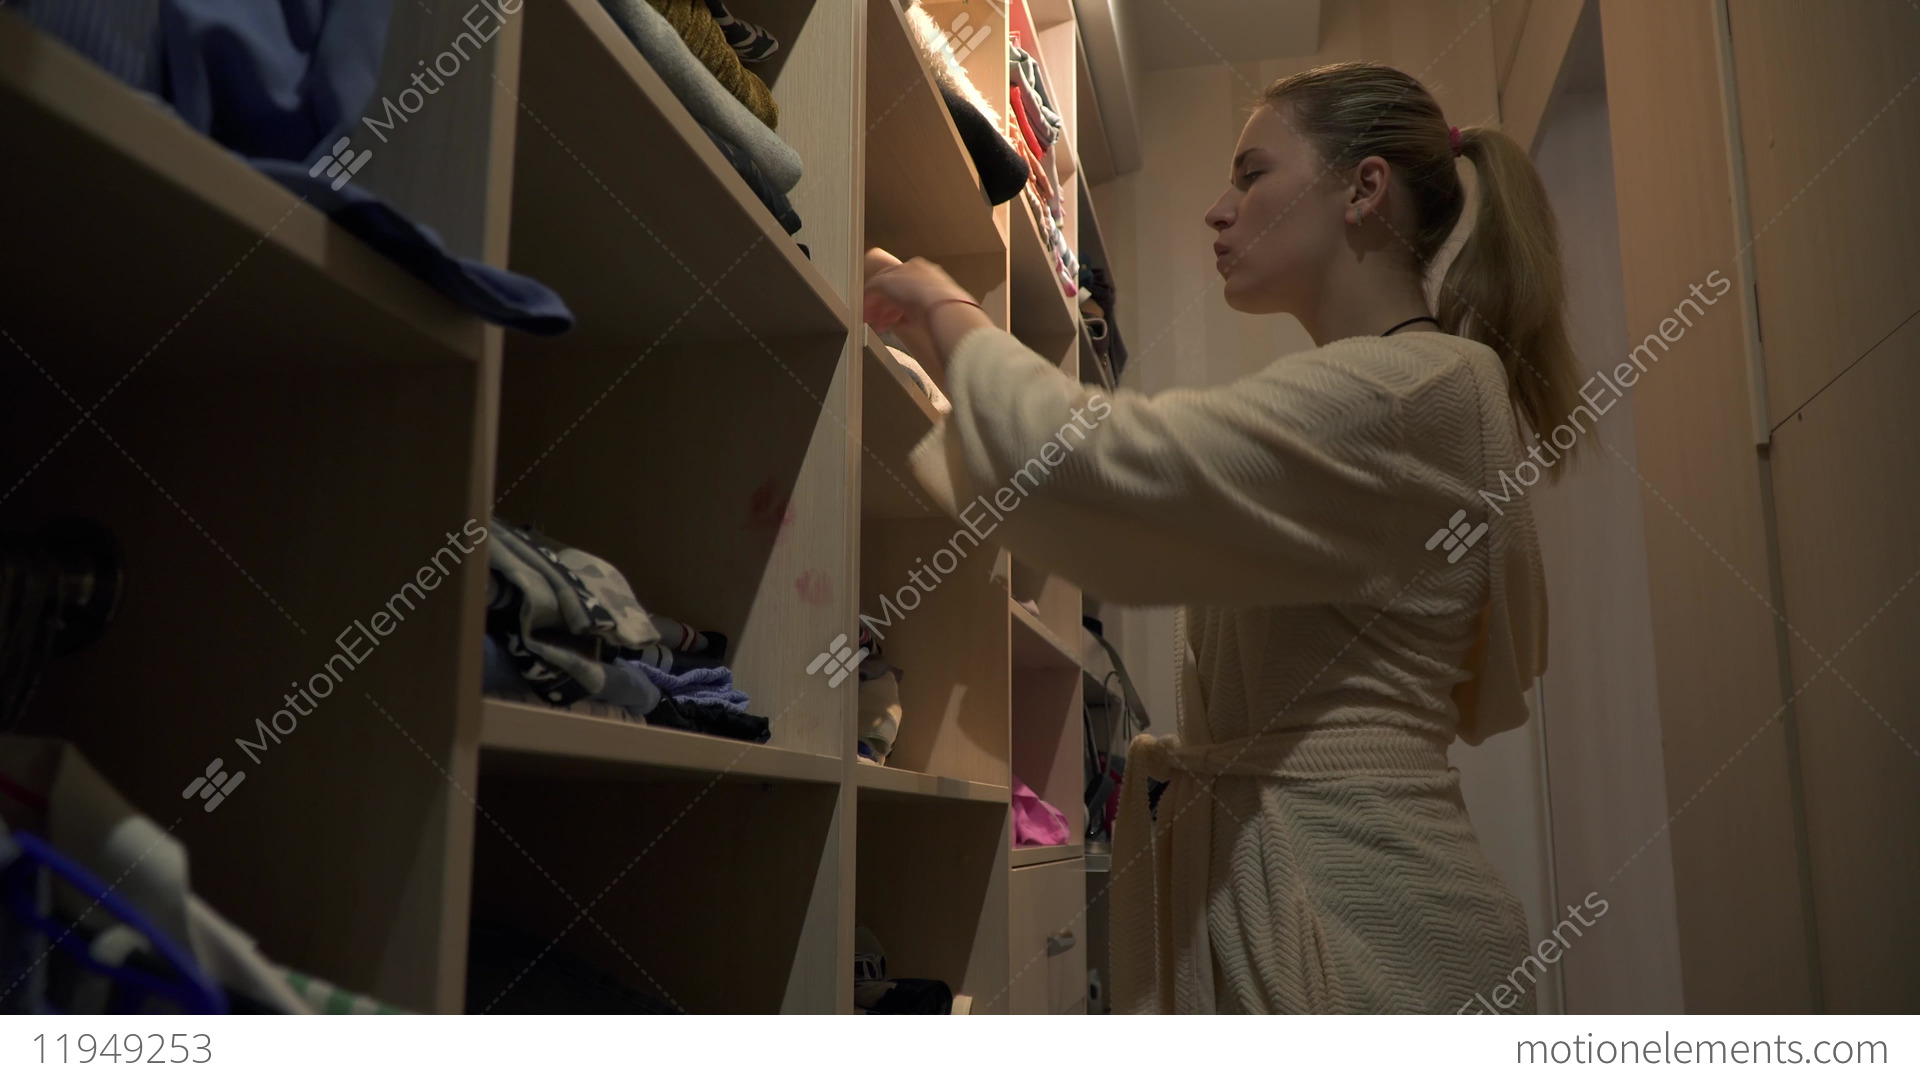 Young girl dressing room